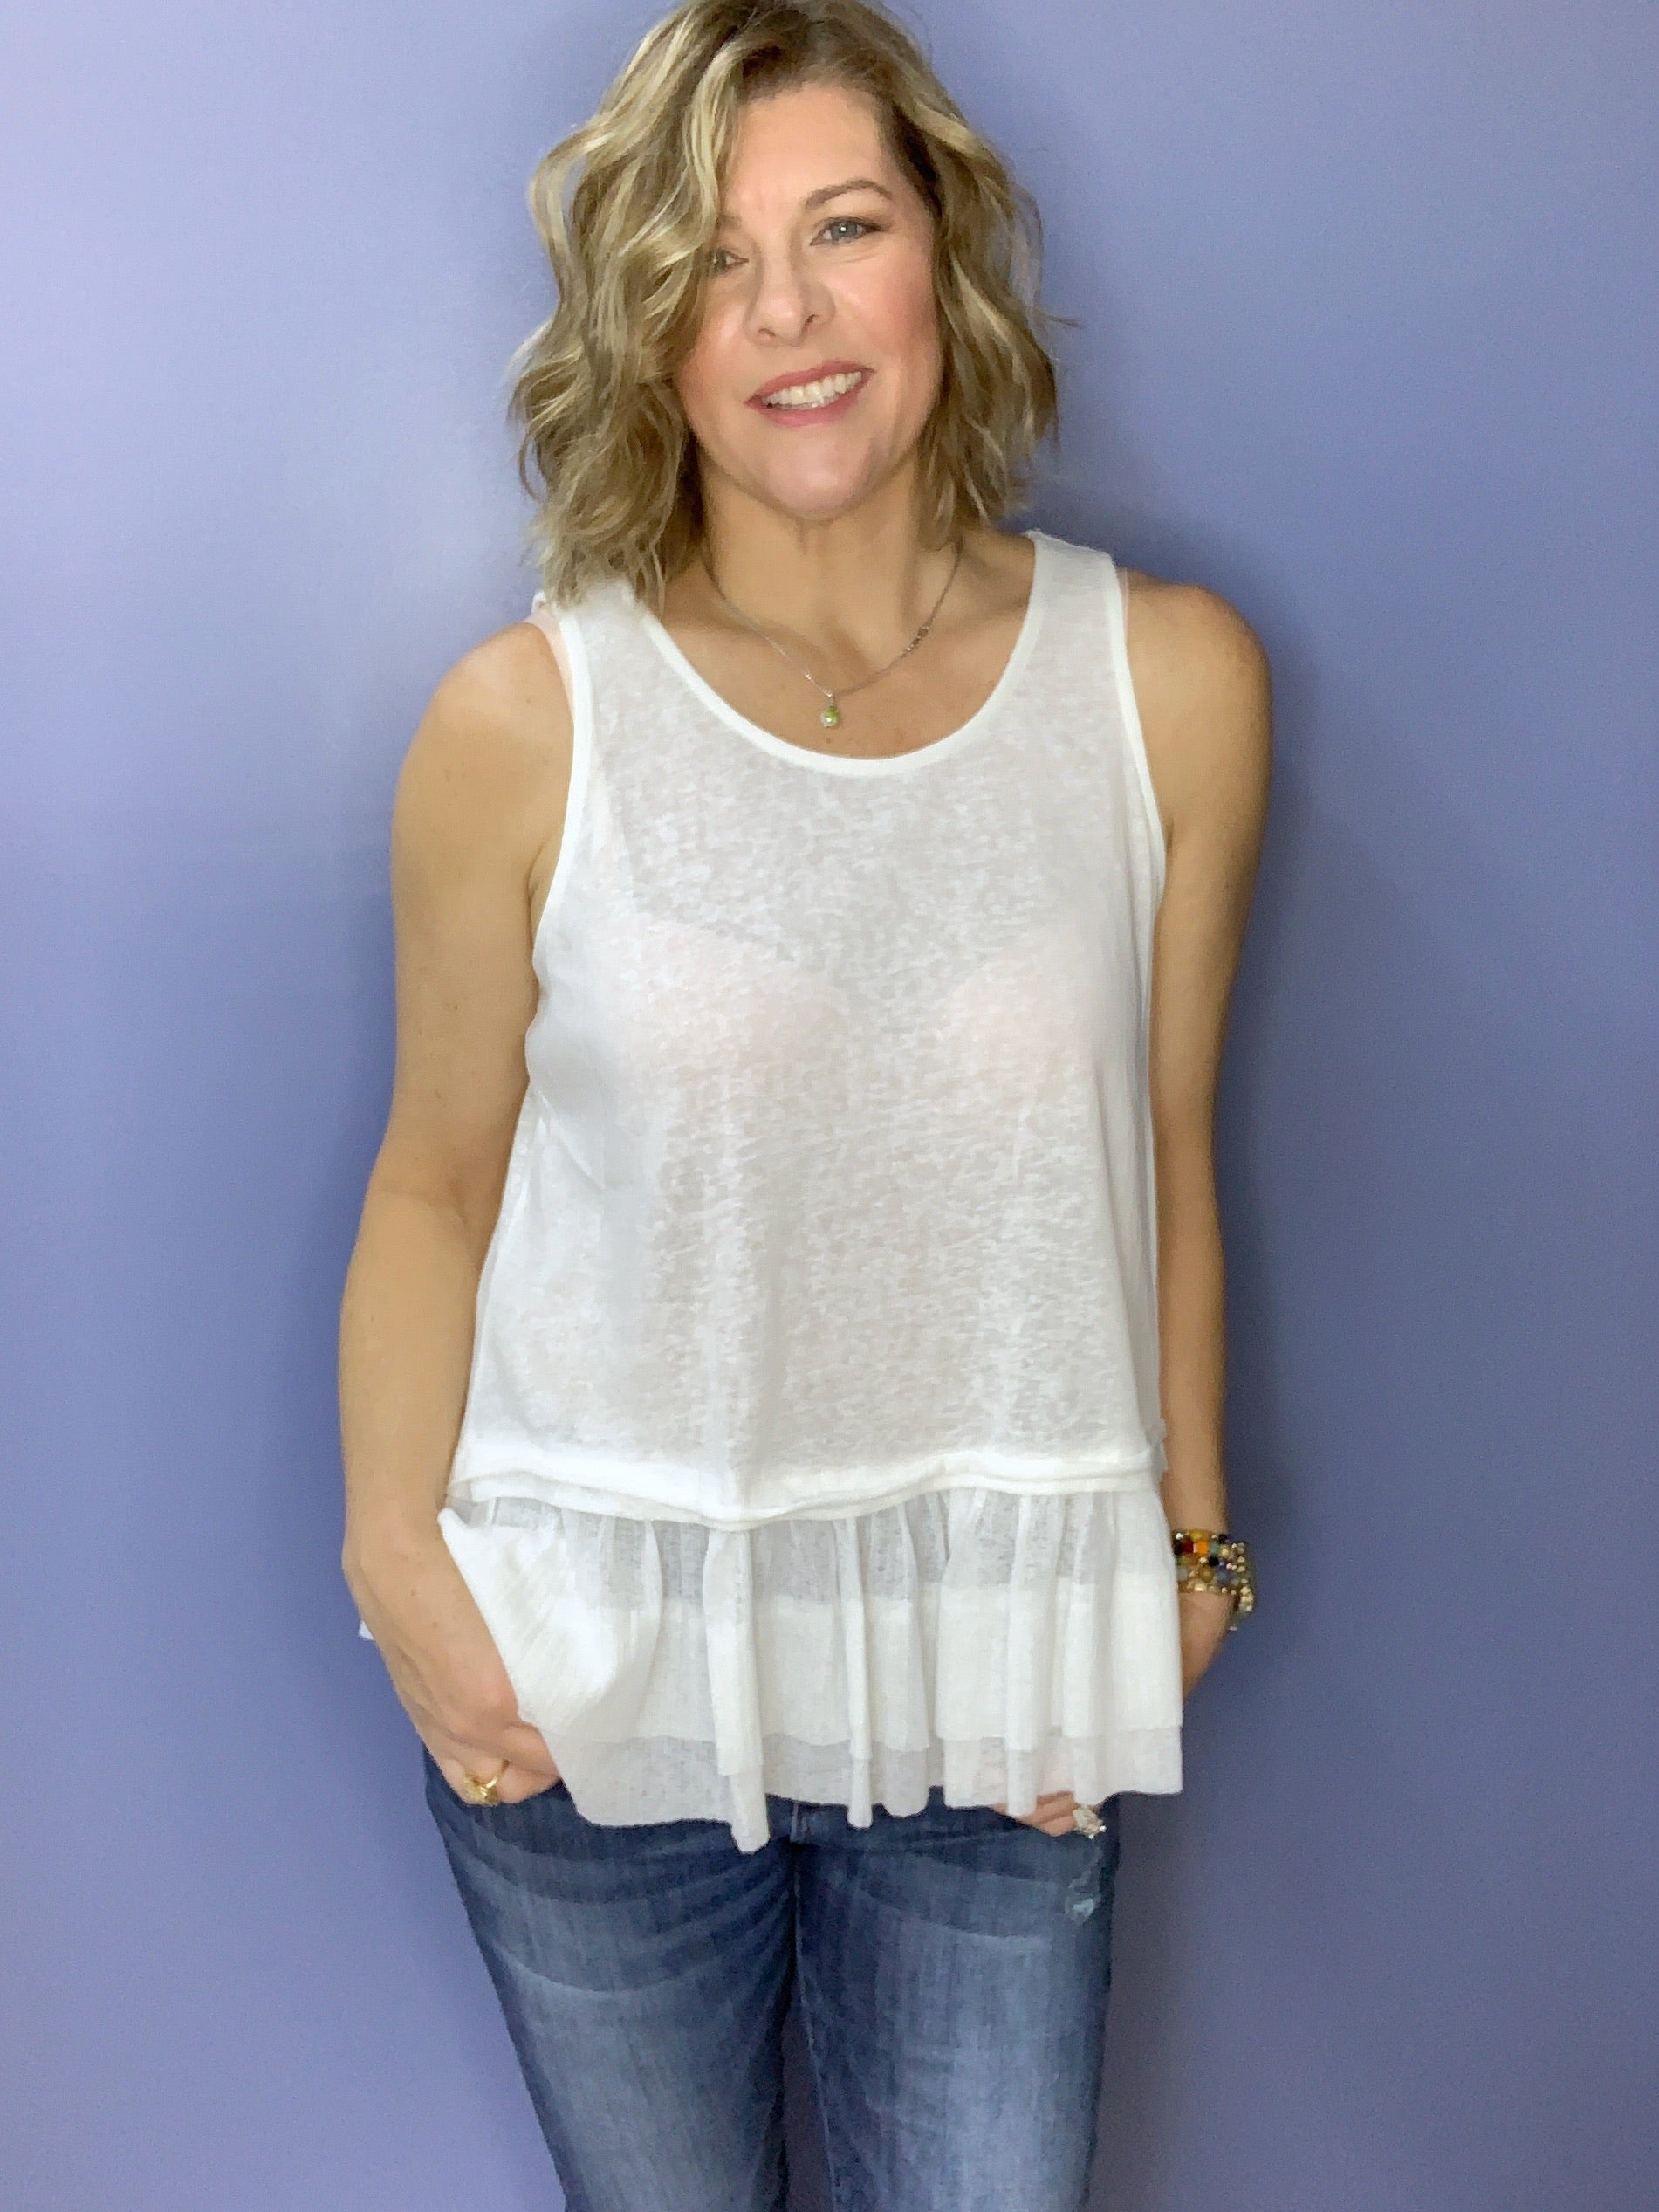 True Love - Ruffled Tank Top / White